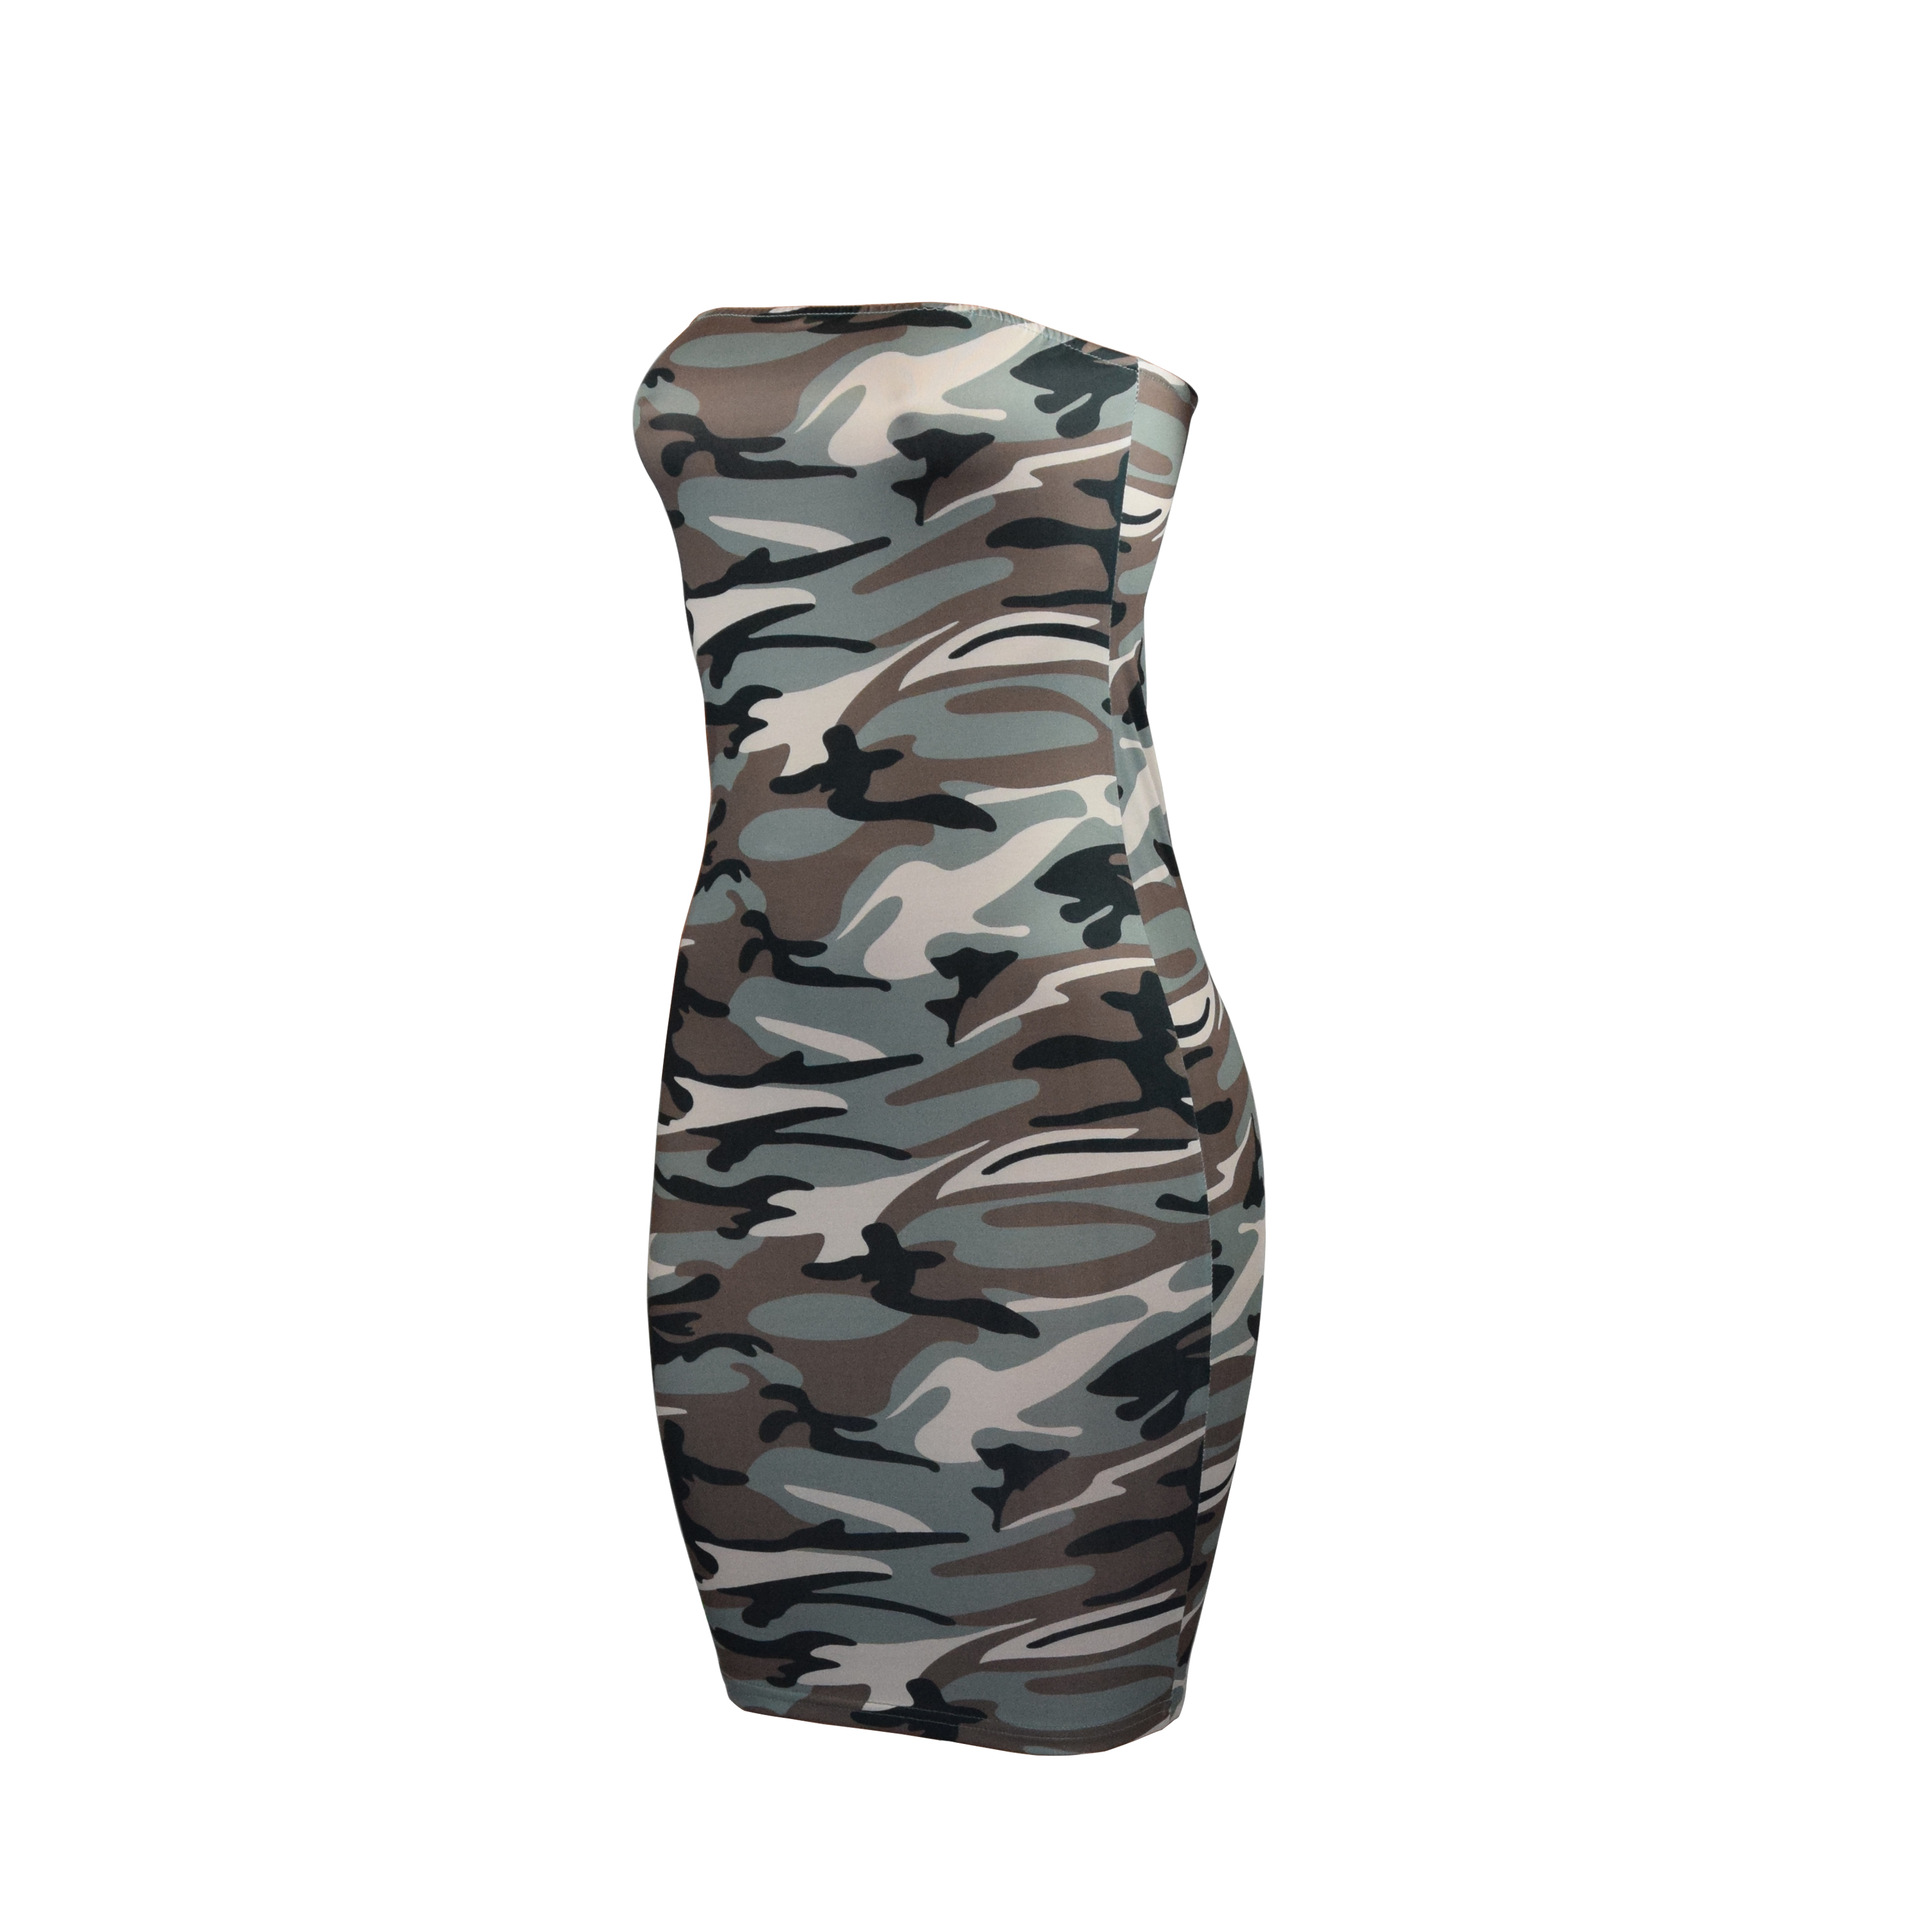 0d3f4e7de1747 New Women Sexy Bandeau Bodycon Dress Camouflage Evening Party Club Pencil Dress  Strapless Ladies Short Mini Dress-in Dresses from Women's Clothing on ...